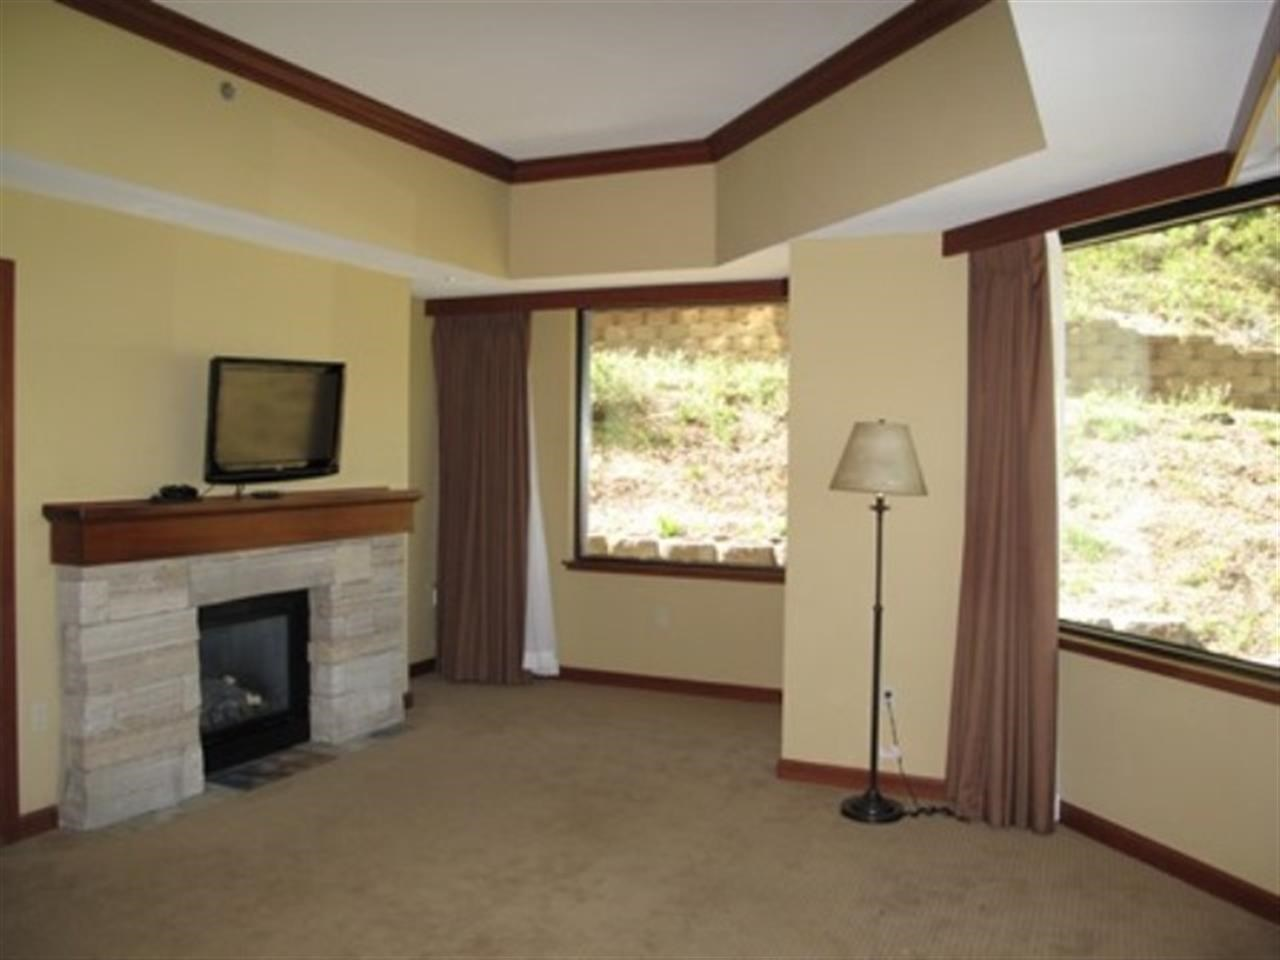 Additional photo for property listing at 400 Squaw Creek Road 400 Squaw Creek Road Olympic Valley, California 96146 Estados Unidos